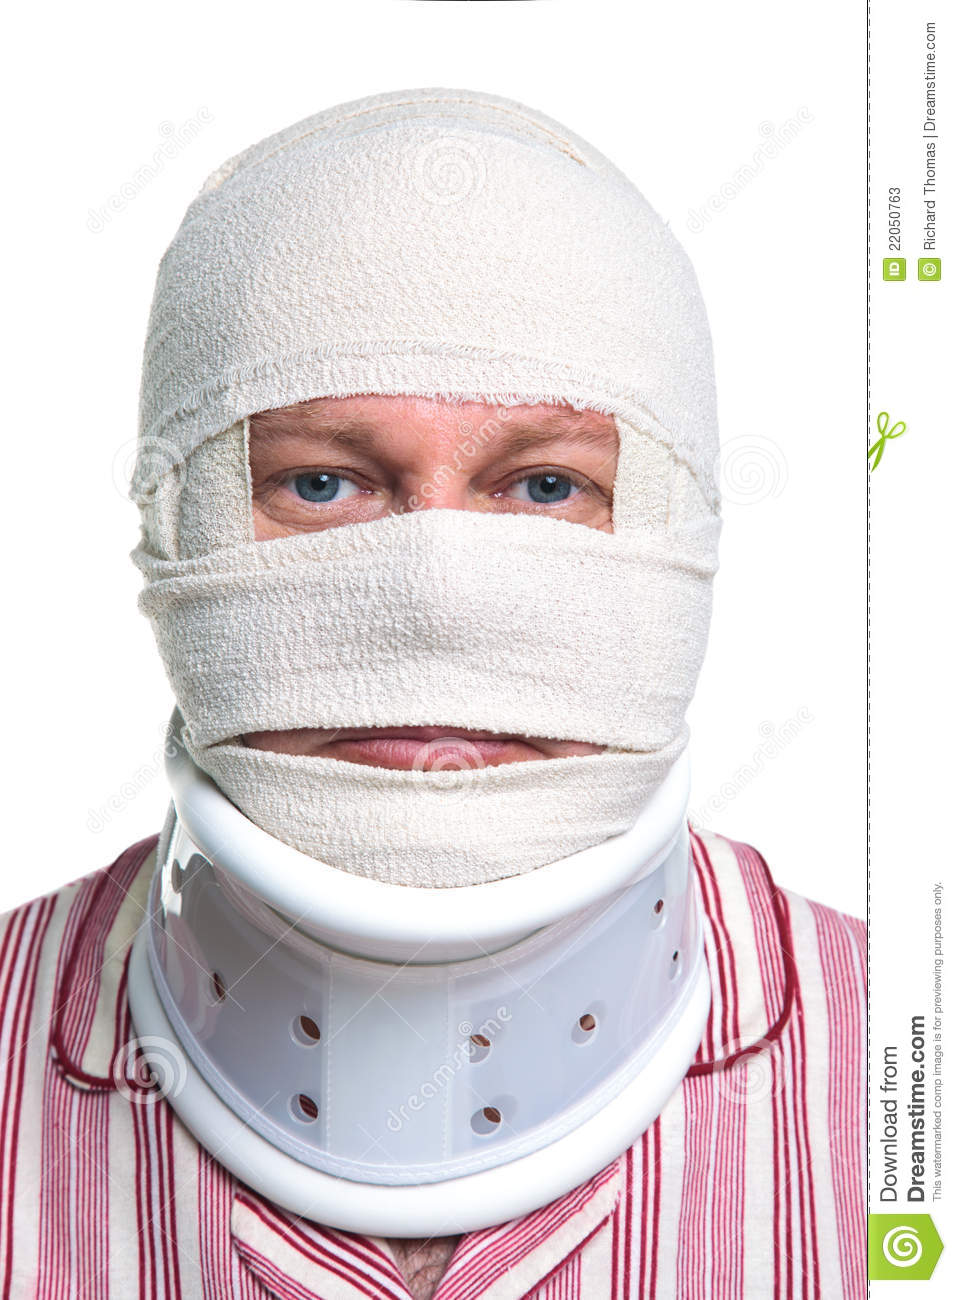 Injured Man With A Head Bandage Stock Photos - Image: 22050763